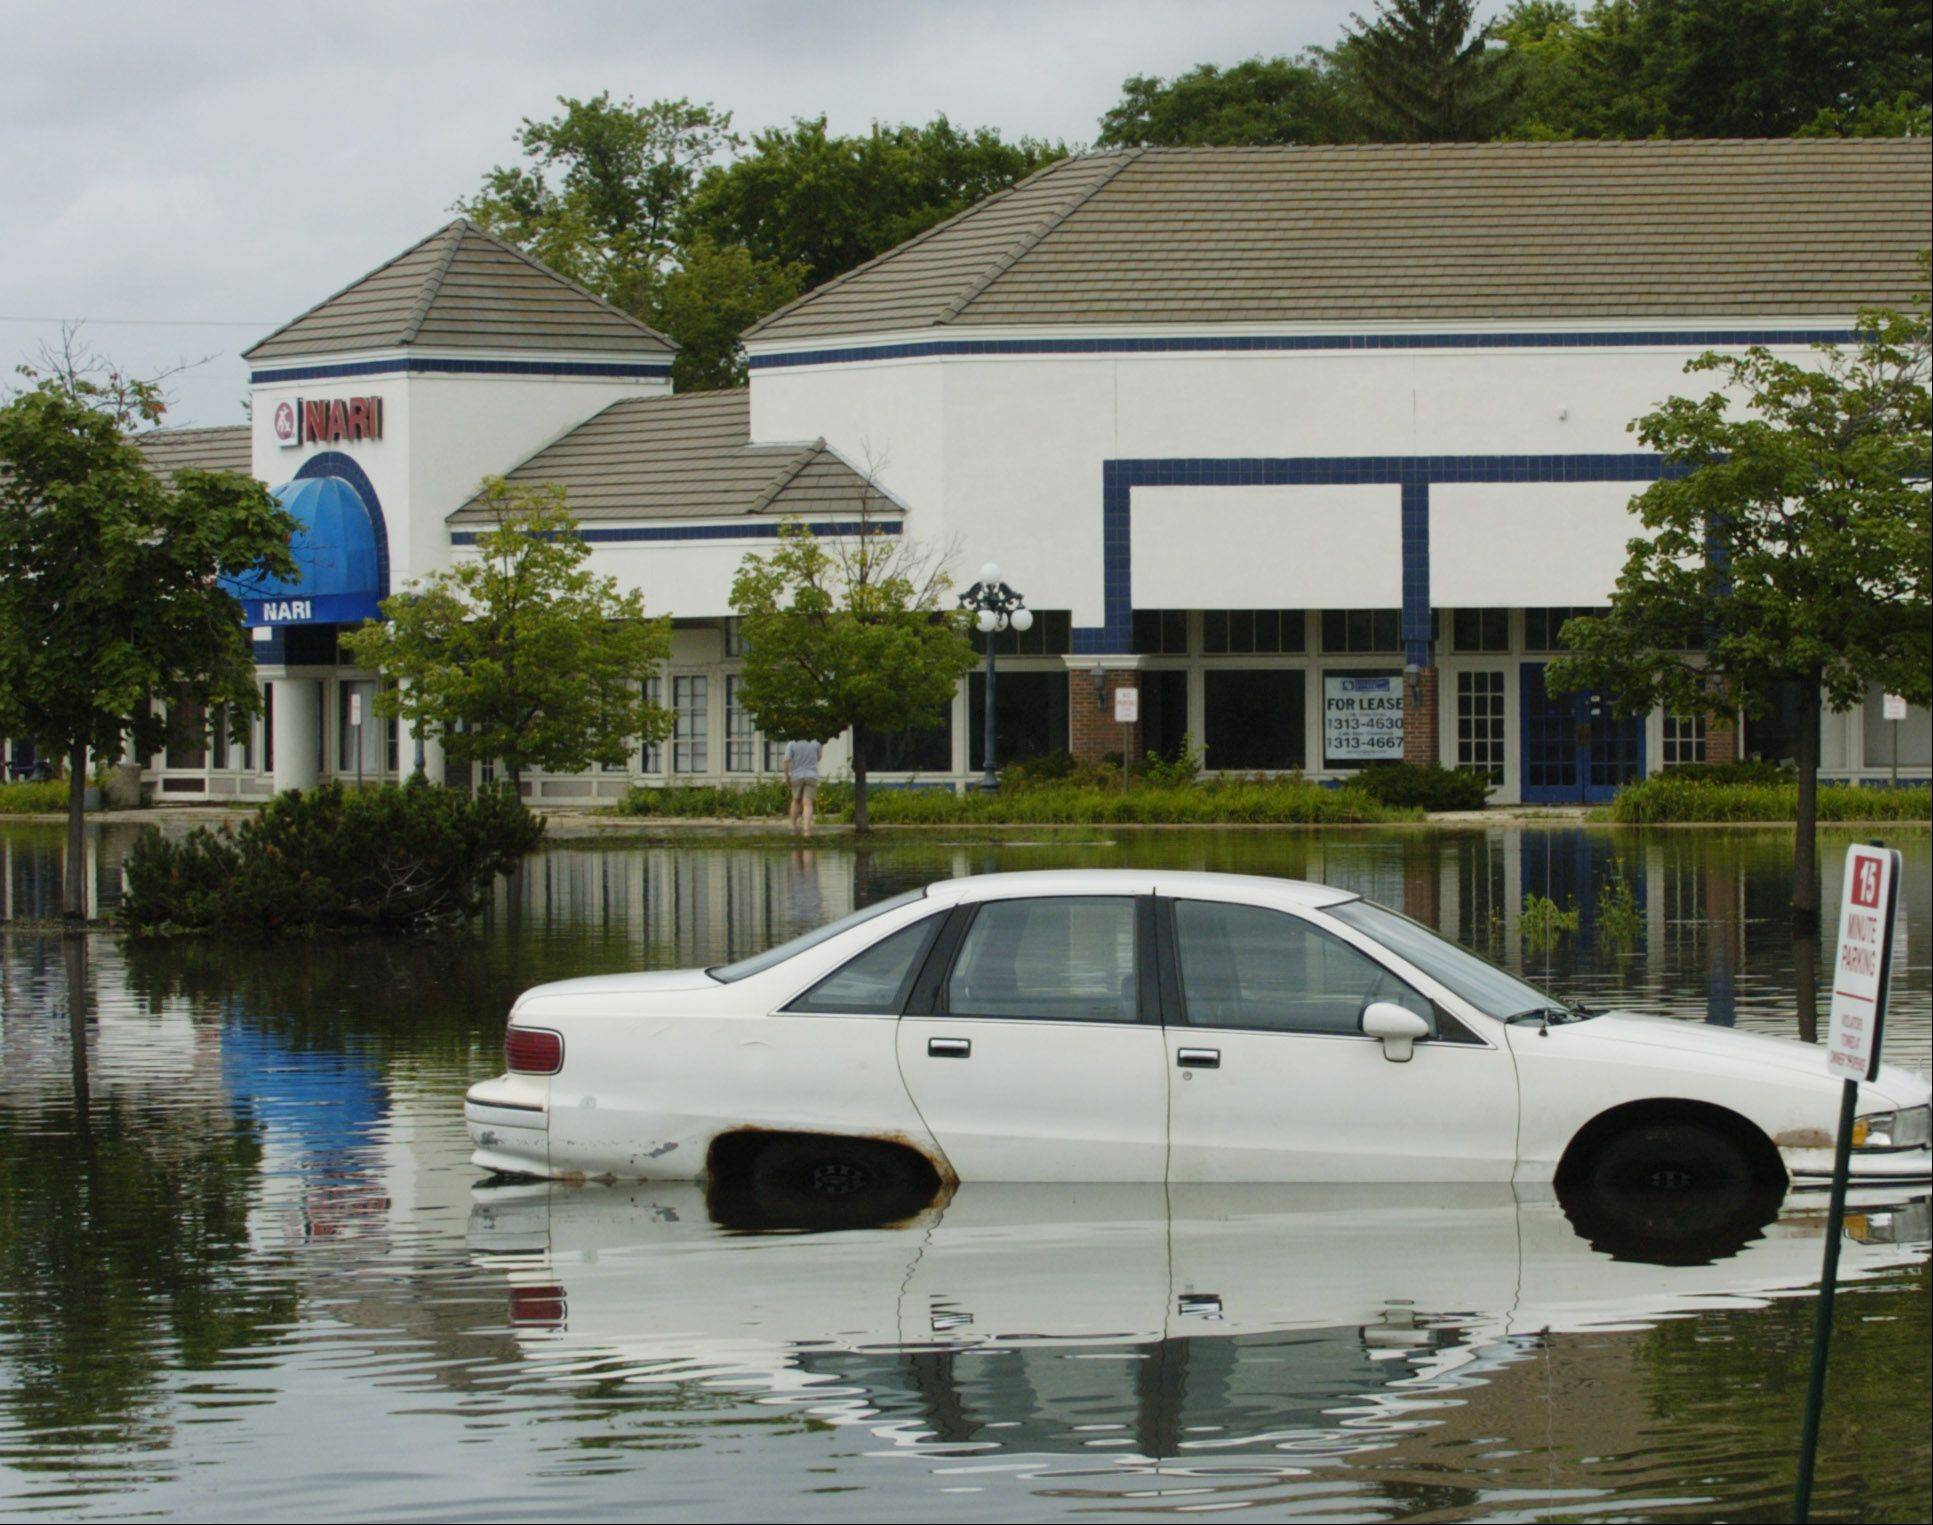 A car sits in floodwater in the International Plaza parking lot on Golf Road just east of Arlington Heights Road after heavy rain in July 2011 in Arlington Heights. The village has two studies under way to address flooding from that storm.